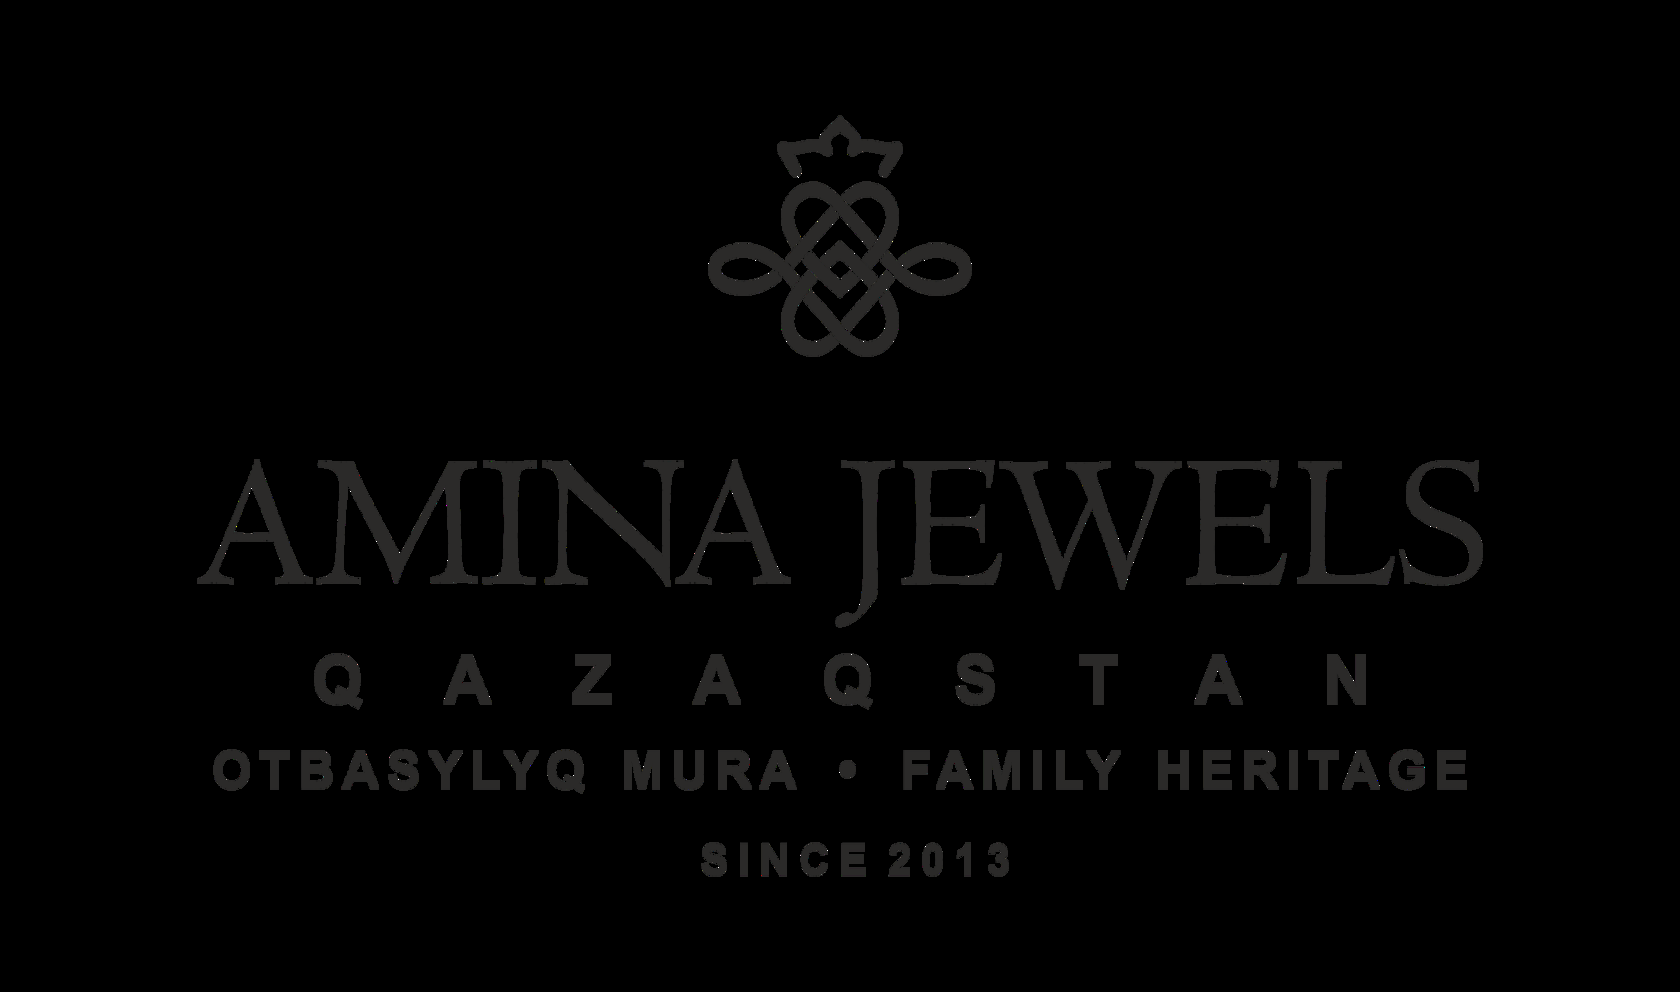 Amina Jewels